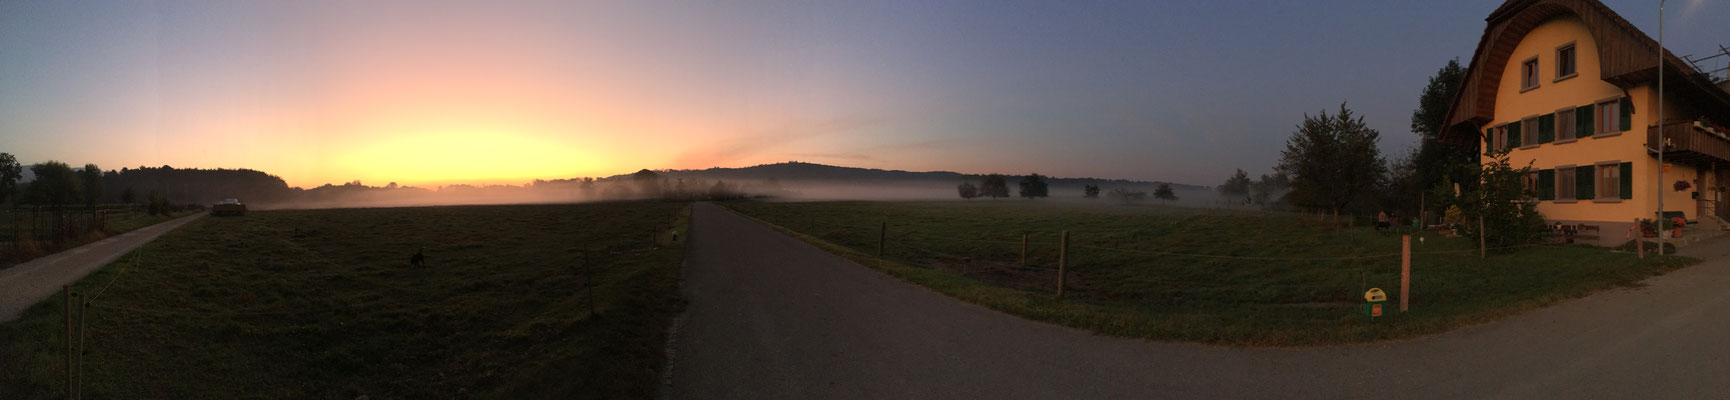 Herbstmorgenpanorama